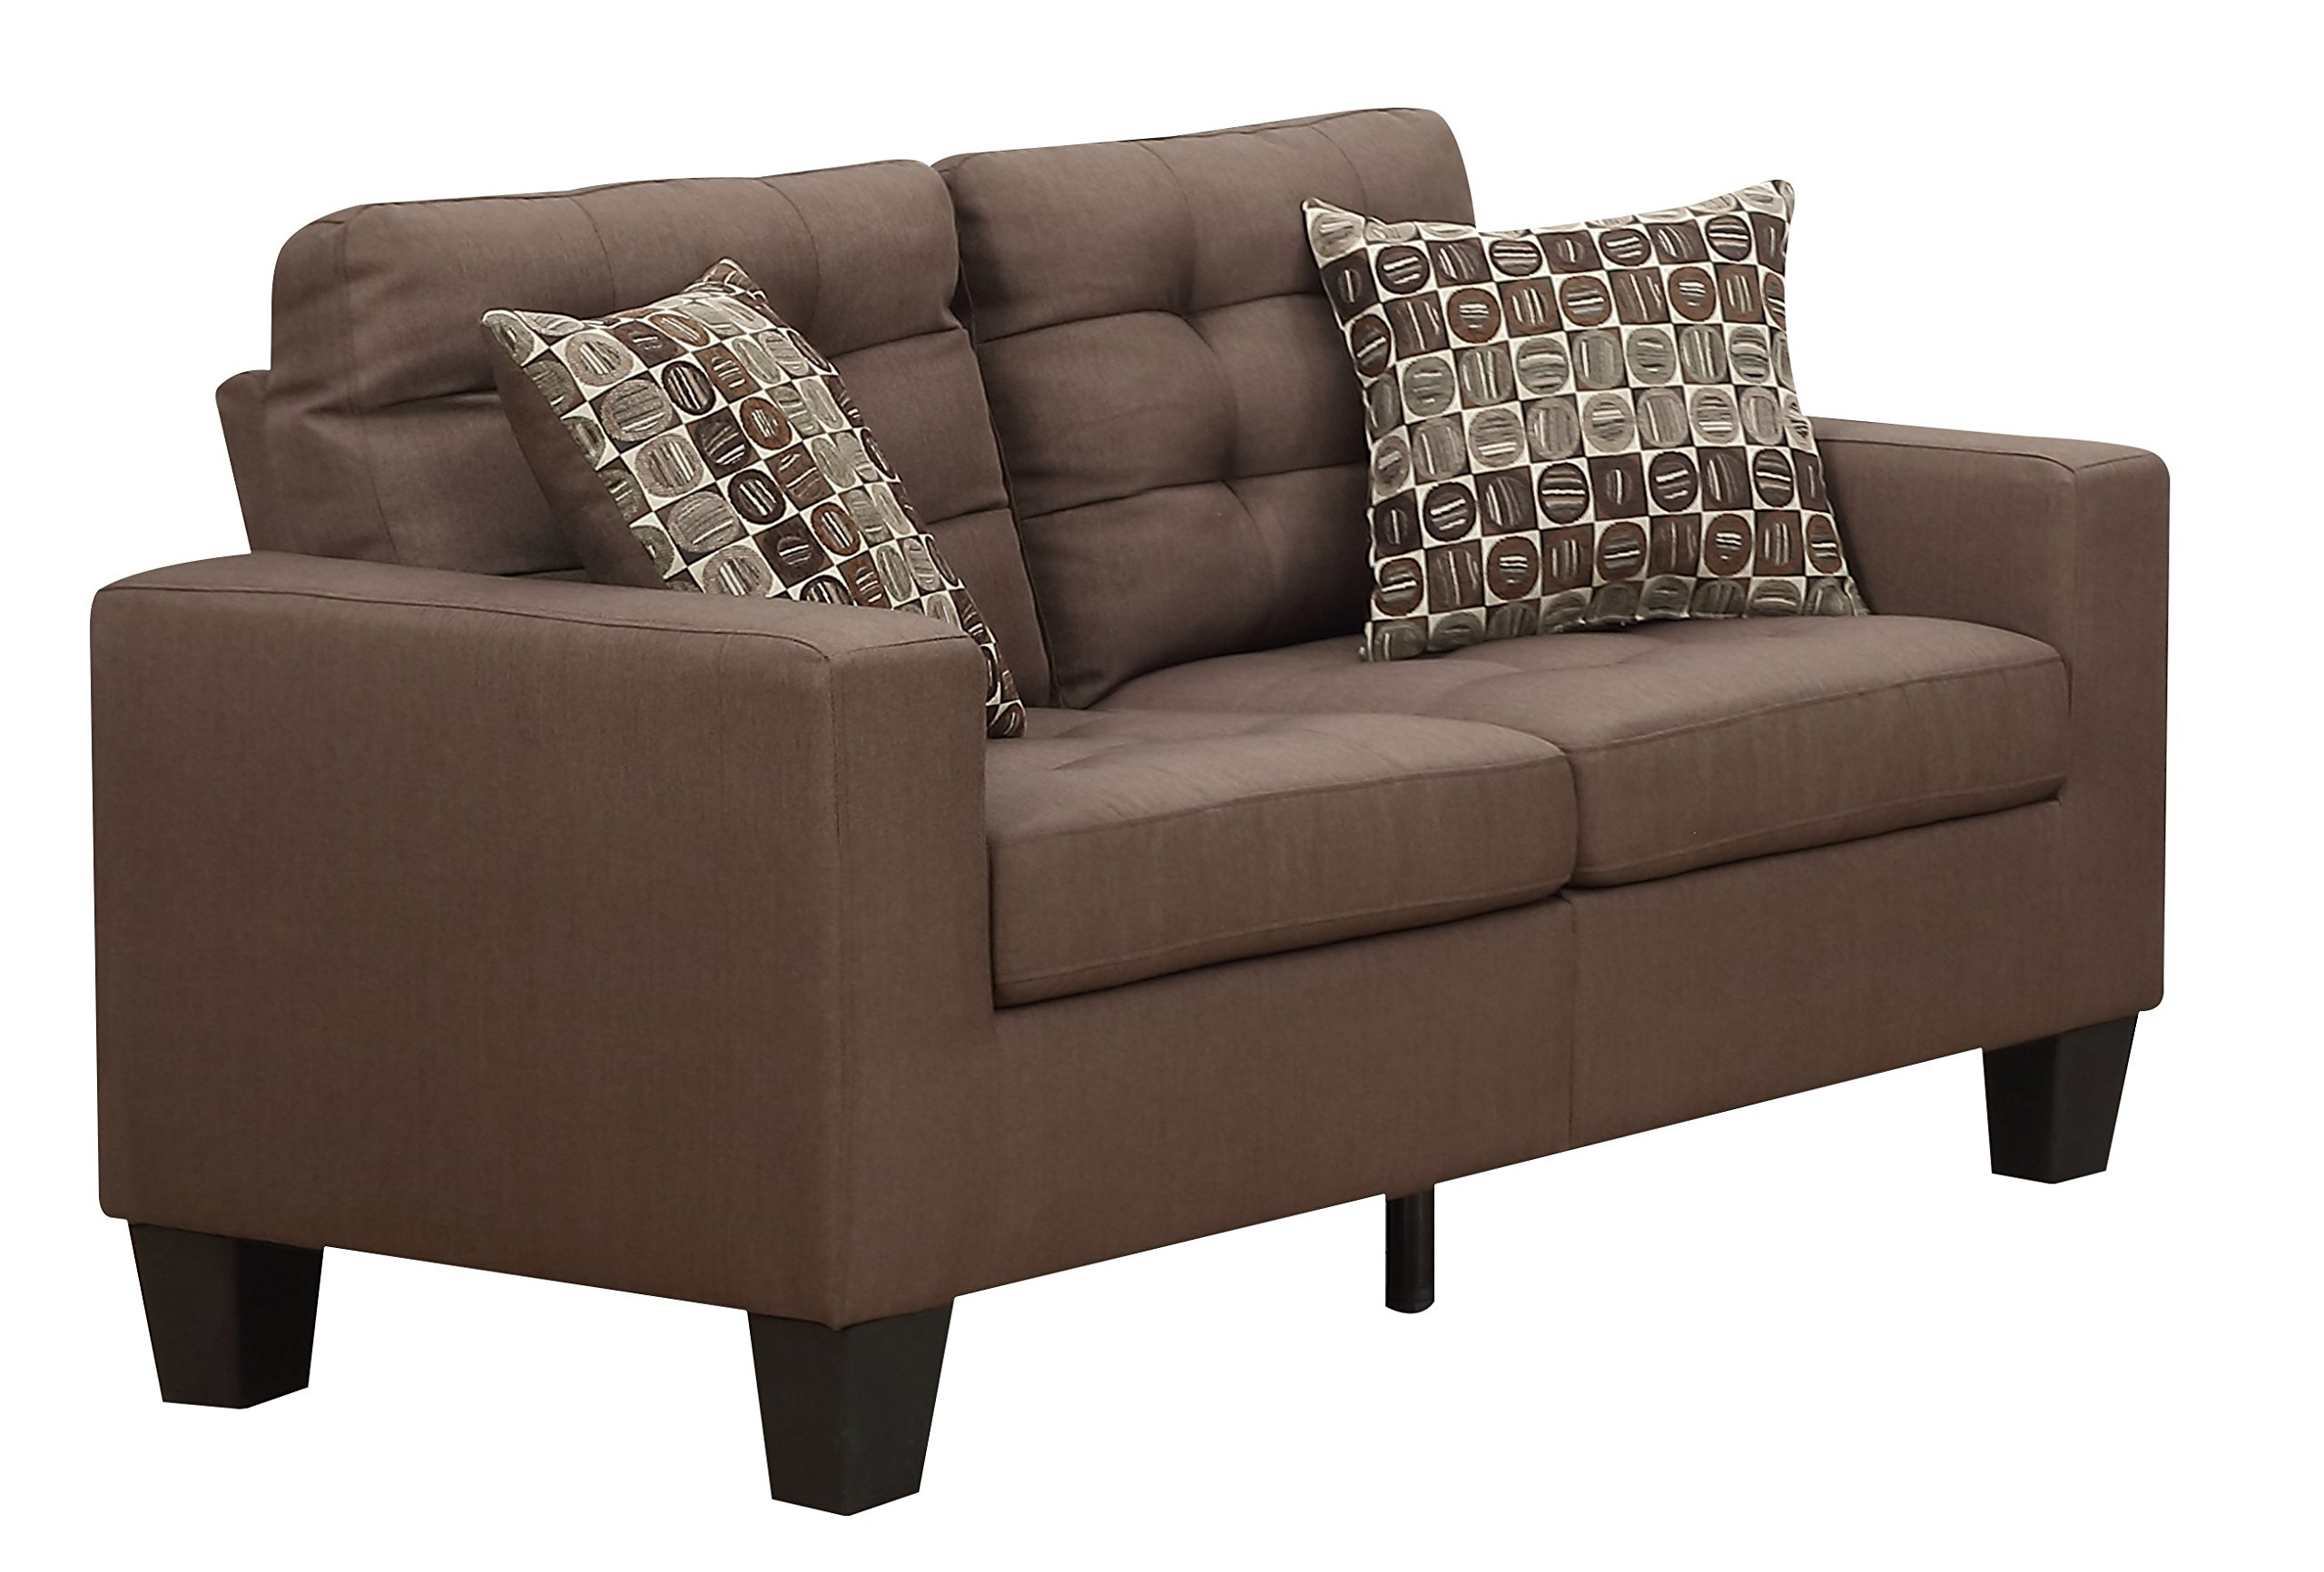 Furniture World Aston Love Seat, Chocolate